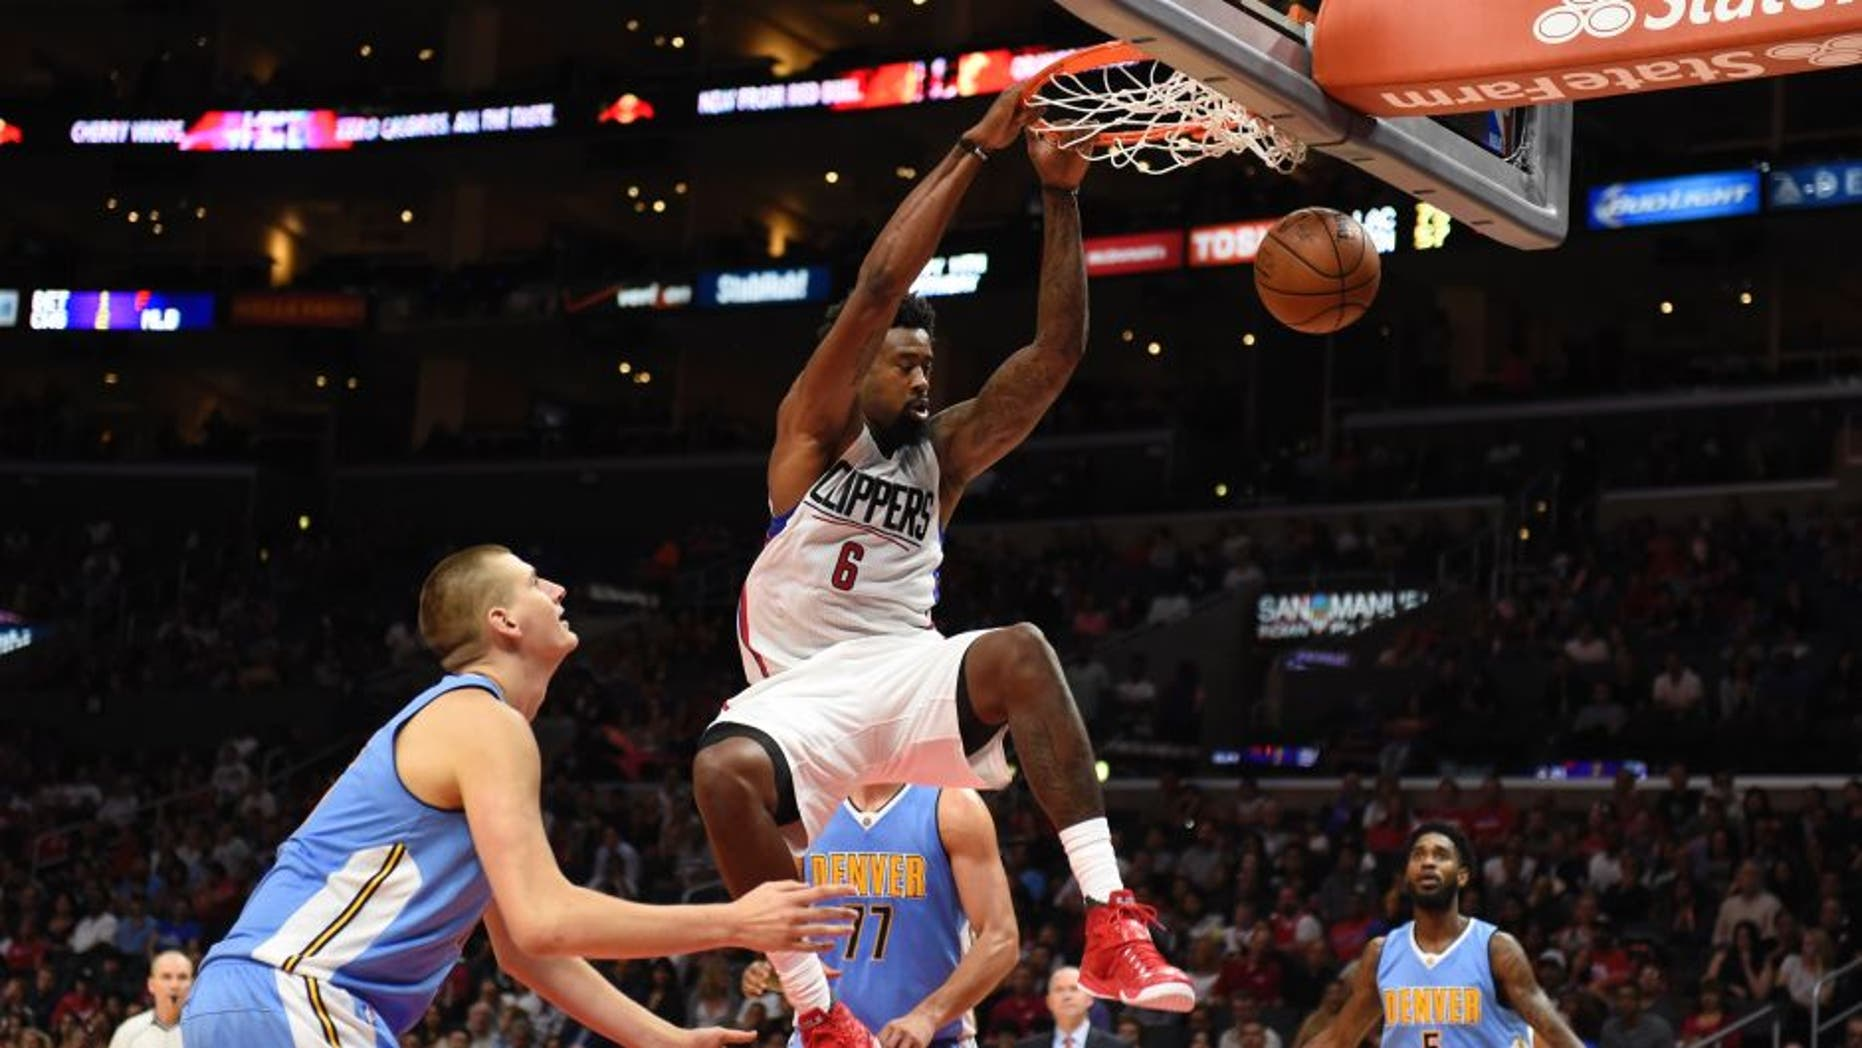 Oct 2, 2015; Los Angeles, CA, USA; Los Angeles Clippers center DeAndre Jordan (6) dunks against the Denver Nuggets during the second half at Staples Center. Mandatory Credit: Richard Mackson-USA TODAY Sports